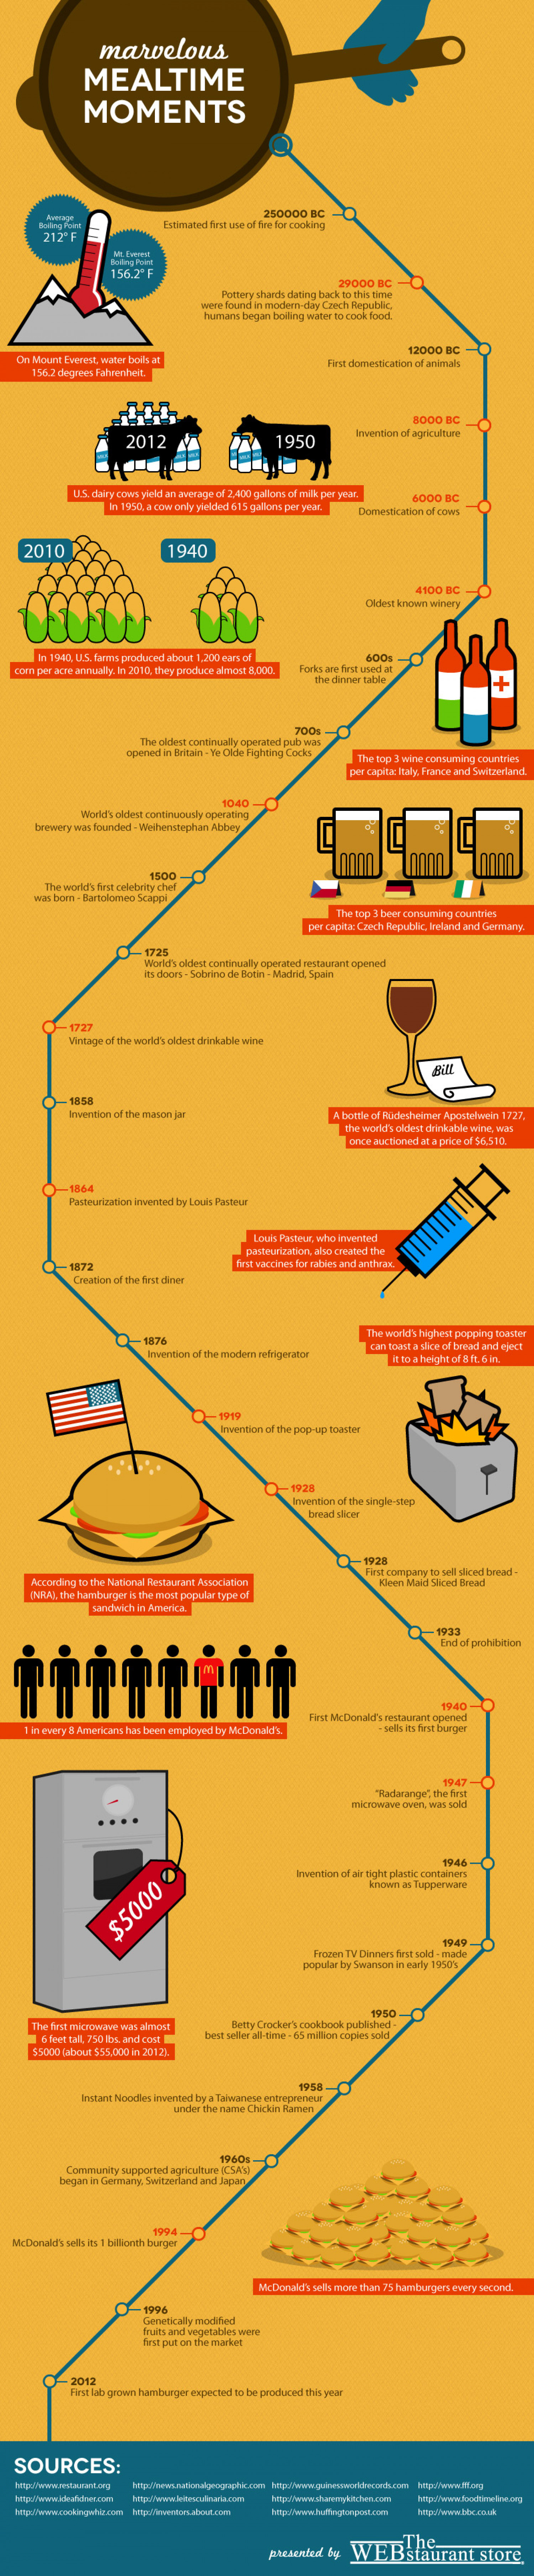 Marvelous Mealtime Moments Infographic